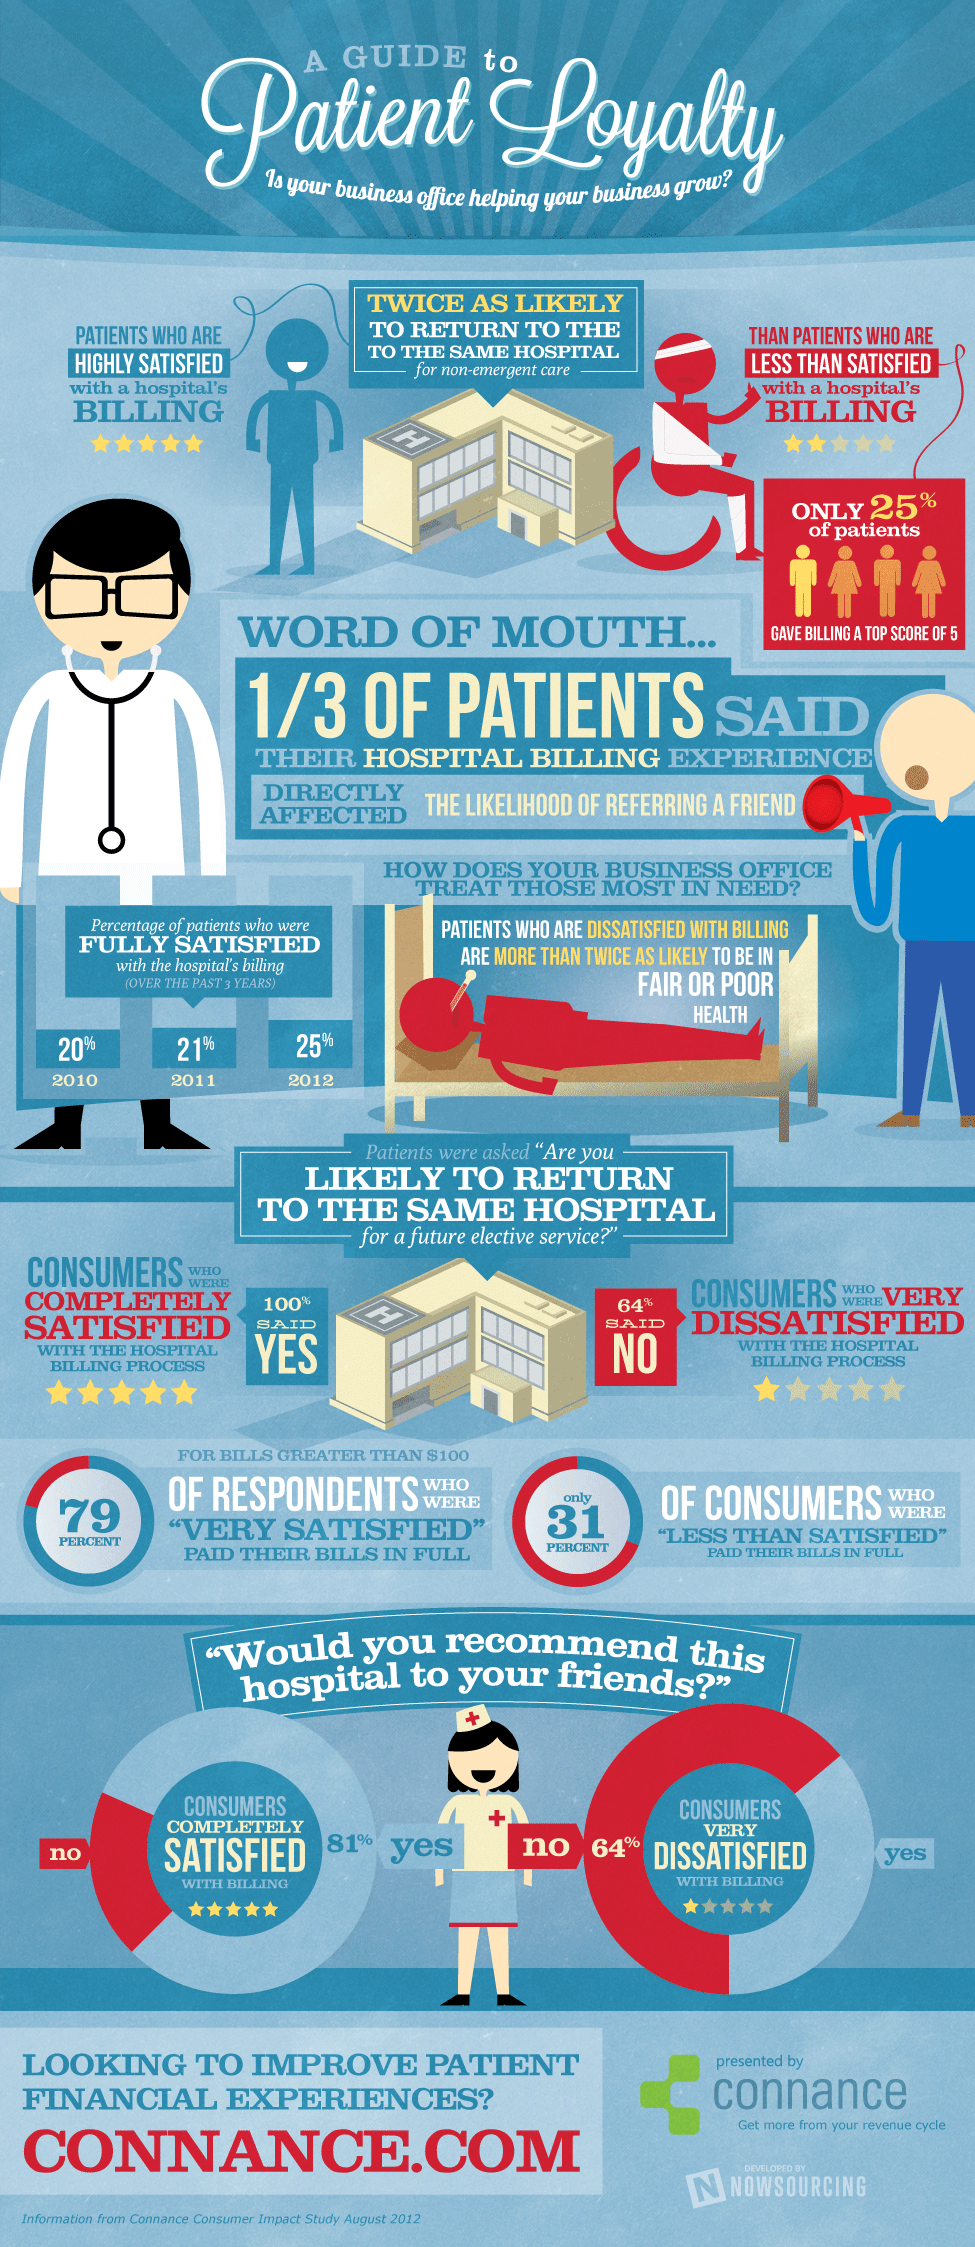 a-guide-to-patient-loyalty_5086d332e3706